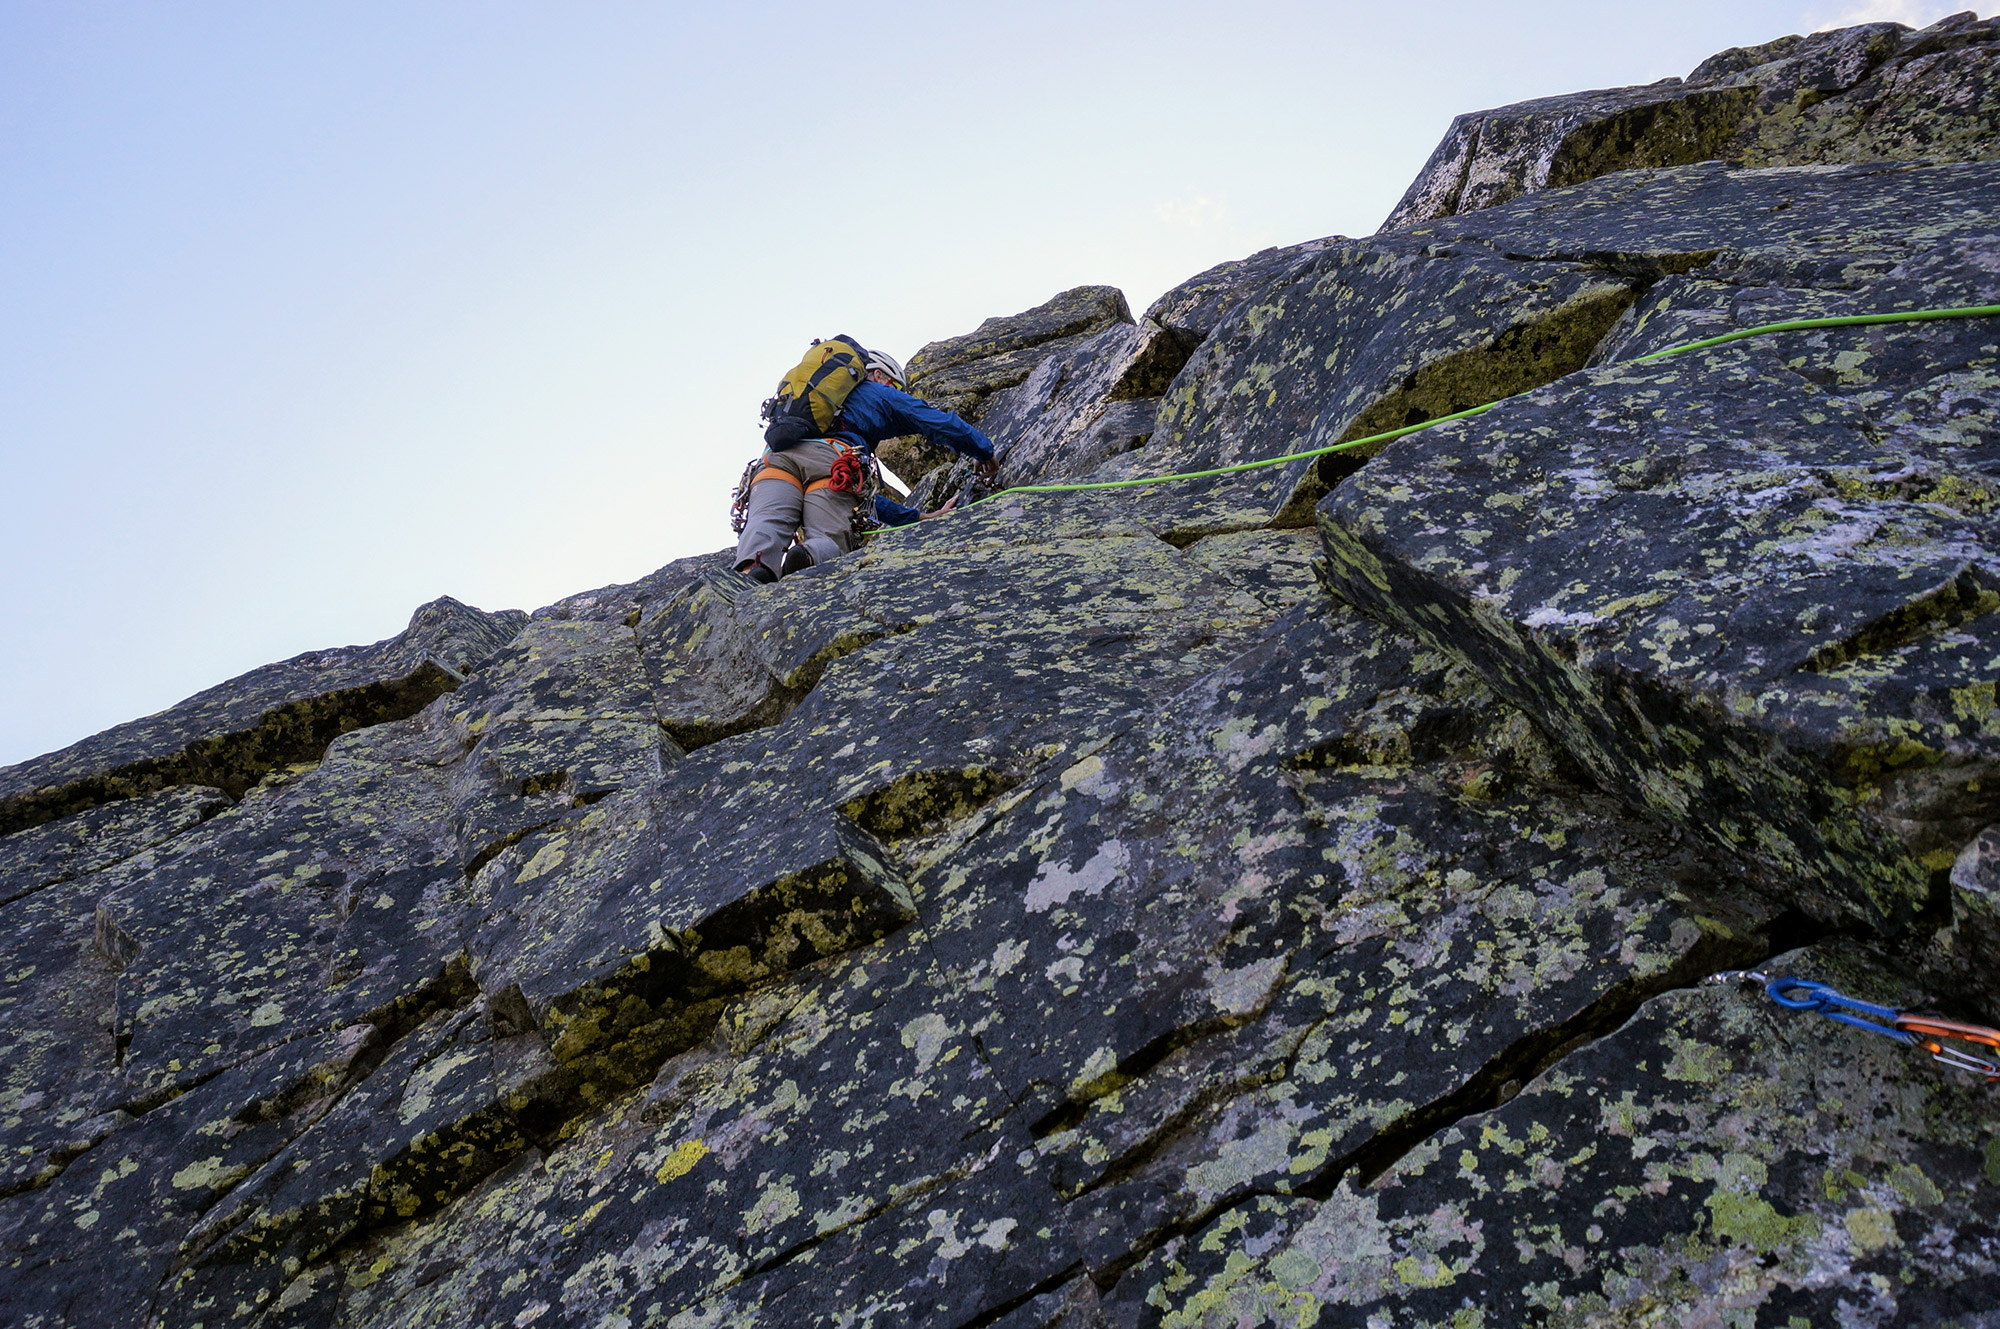 The final pitch before the top of the Pinnacle. | Credit: Tim Peck